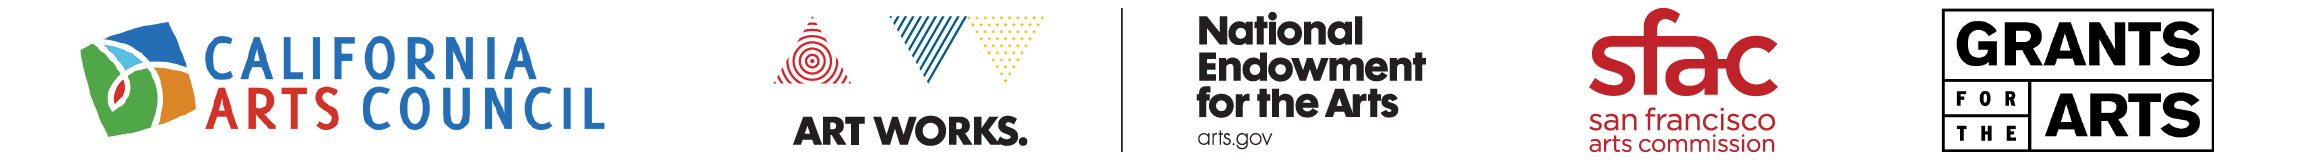 funders logos: California Arts Council, NEA, SF Arts Commission, Grants for the Arts